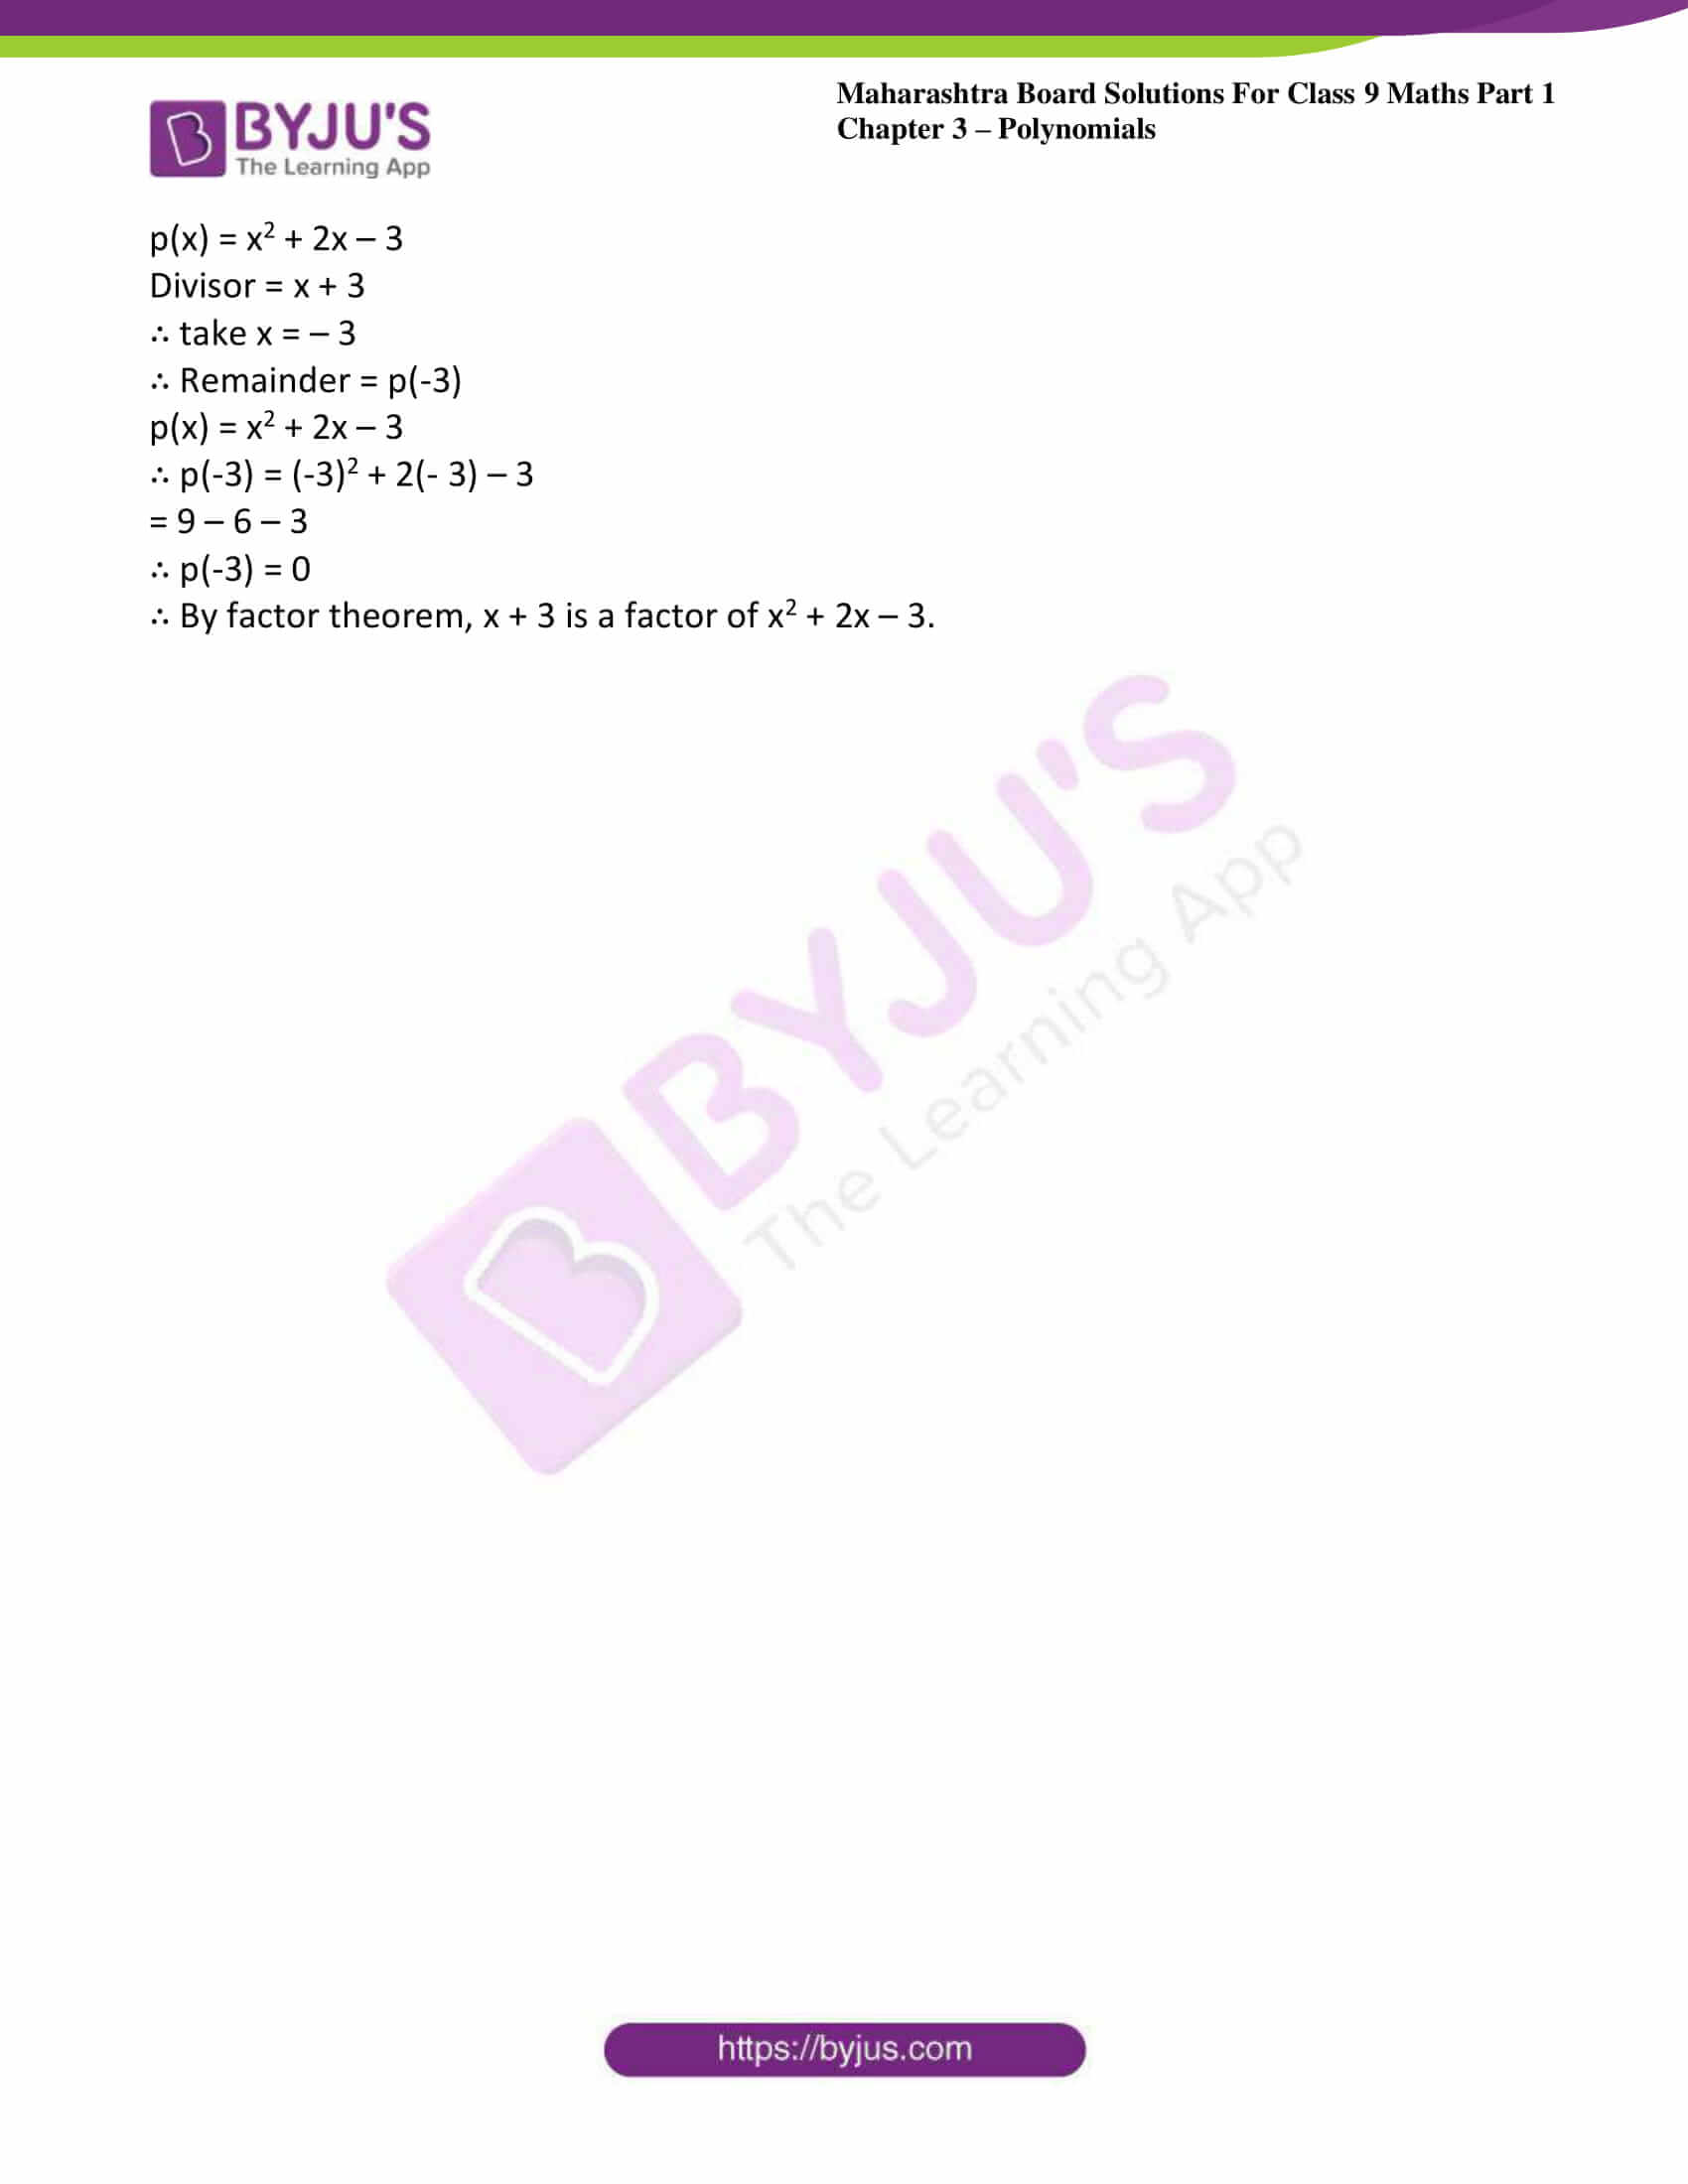 msbshse sol class 9 maths part 1 chapter 3 polynomials 24